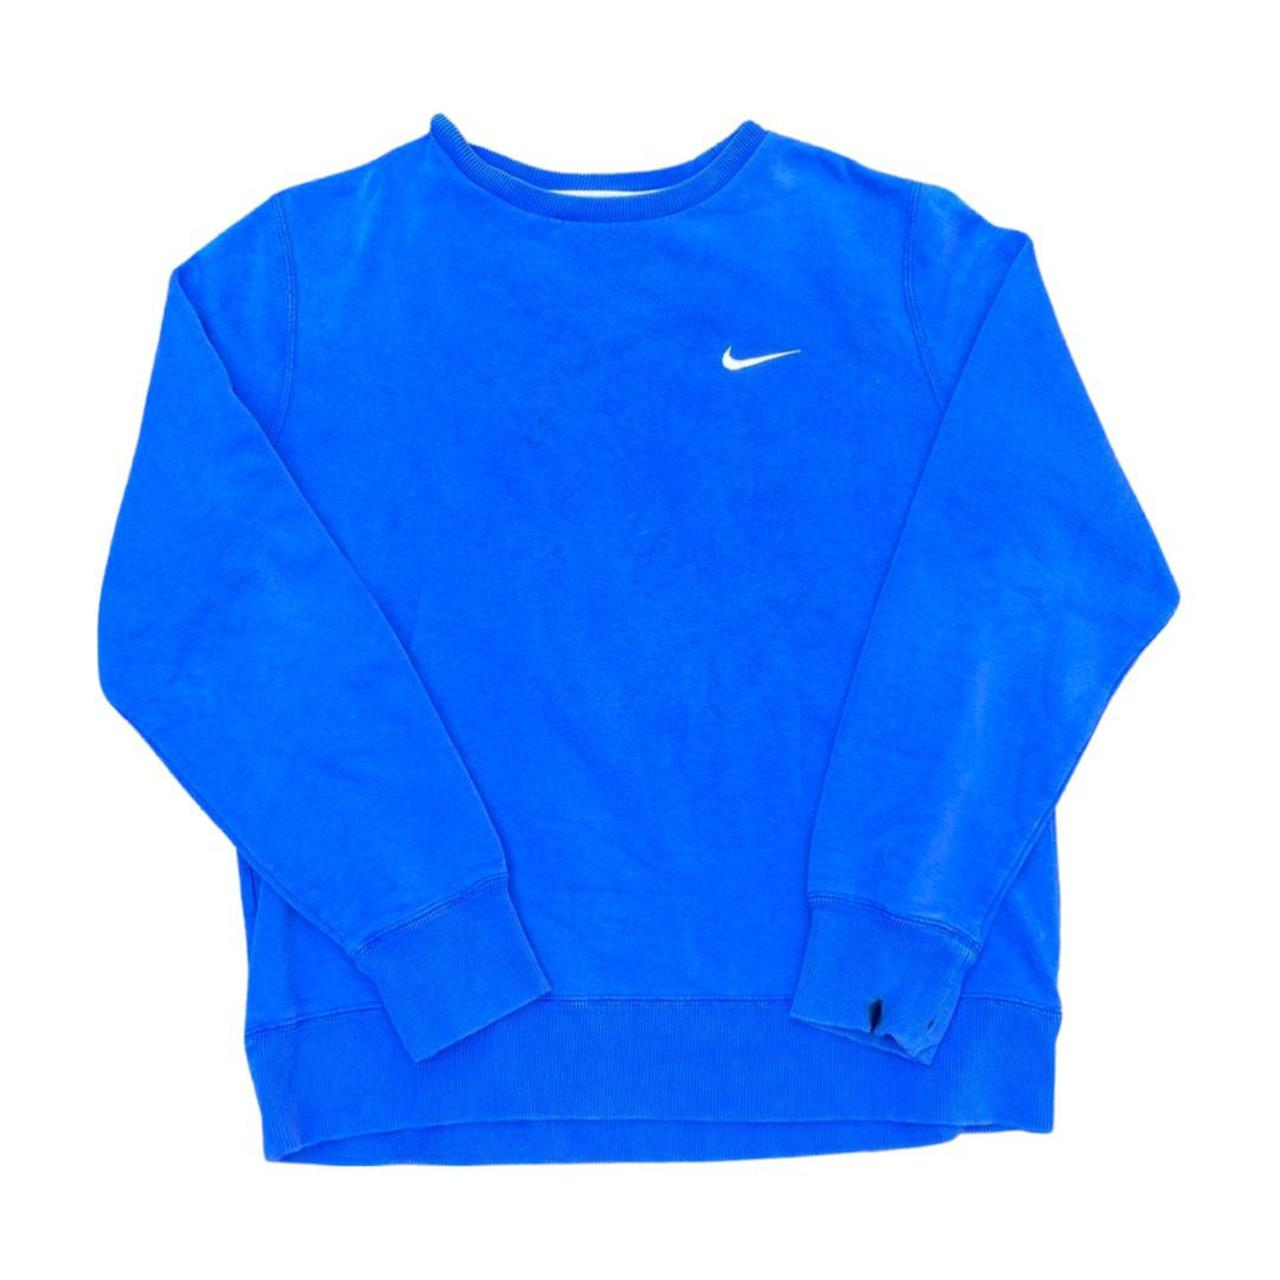 Product Image 1 - Blue Nike sweater 22x26✔️     #depopseller #thrifted